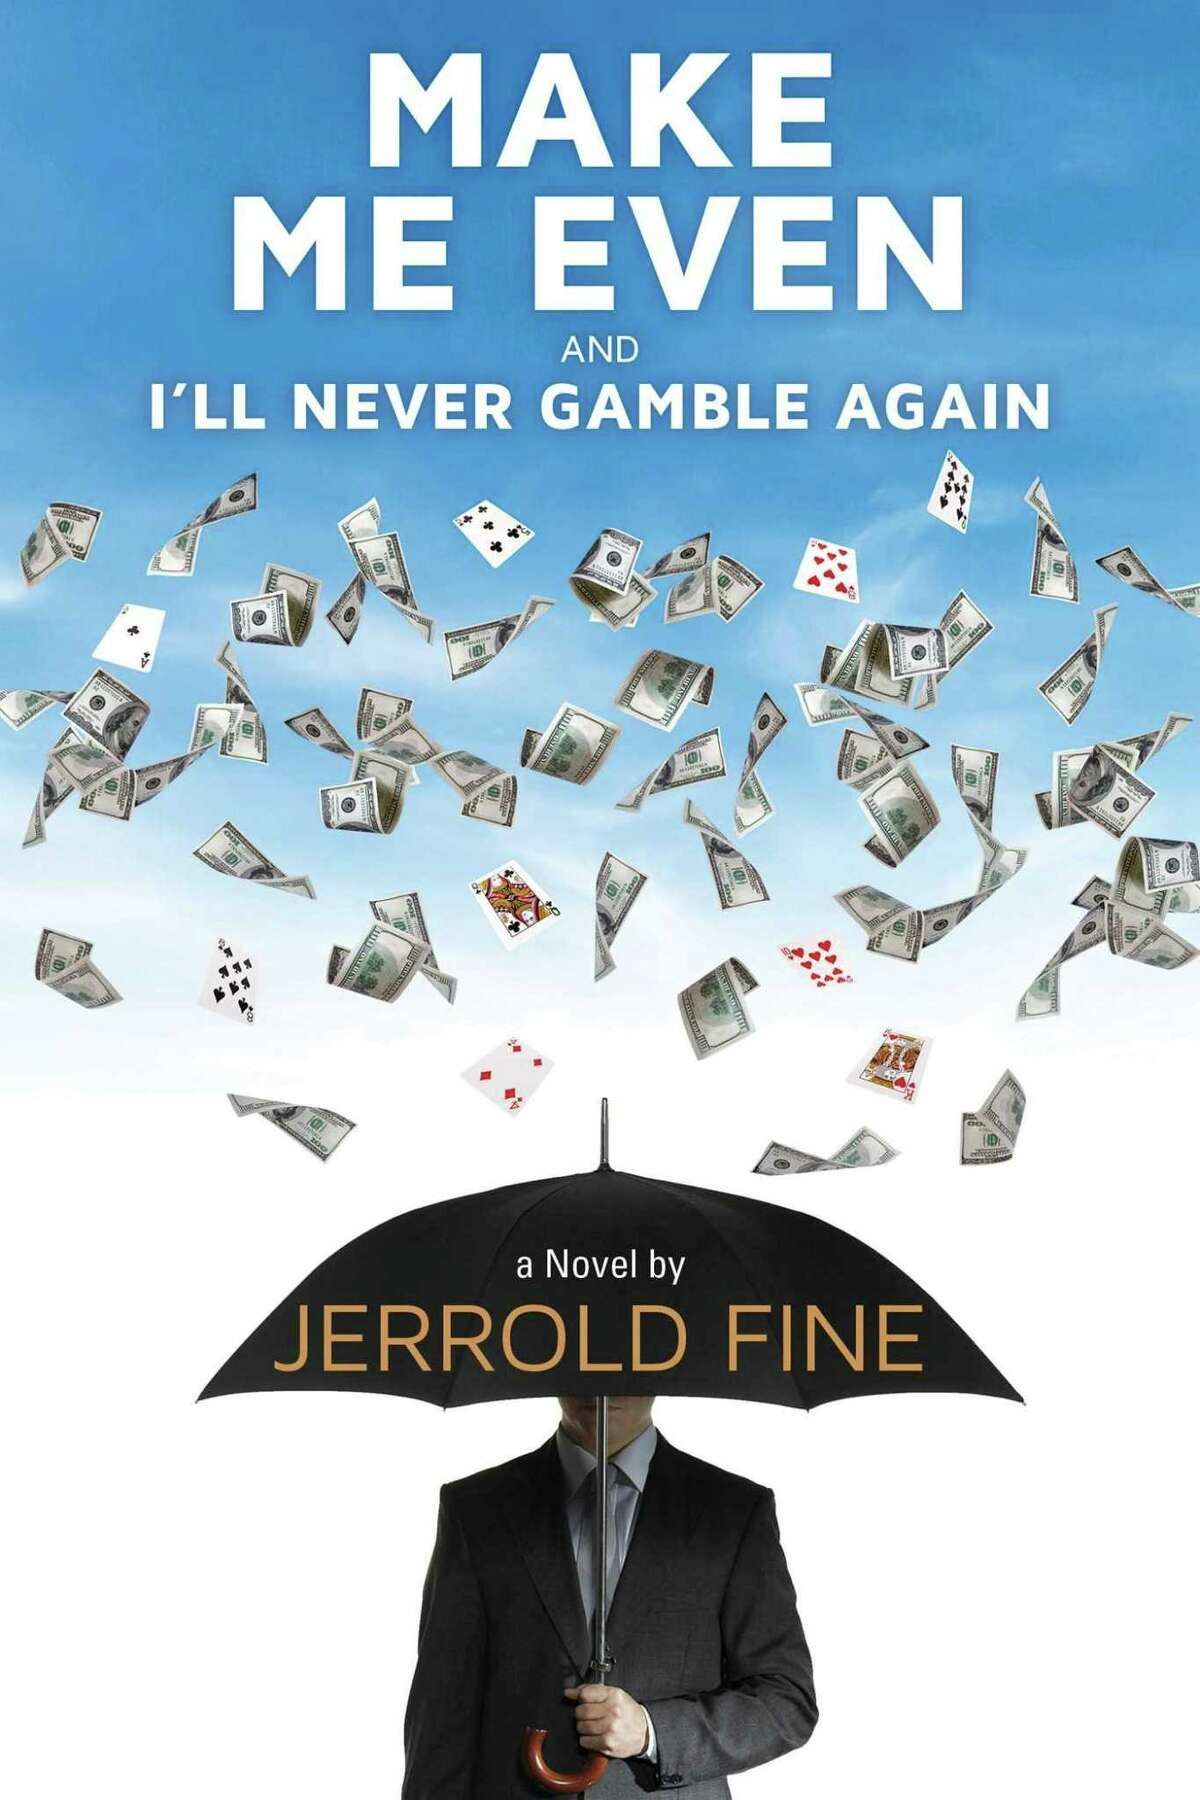 Drawing from his own experiences in the turbulent '70s and '80s, hedge fund pioneer Jerrold Fine blends a heartfelt story of a young man fiercely intent on achieving independence with a fascinating insider's look at the perks and pitfalls of a high-stakes life in the world of financial markets.